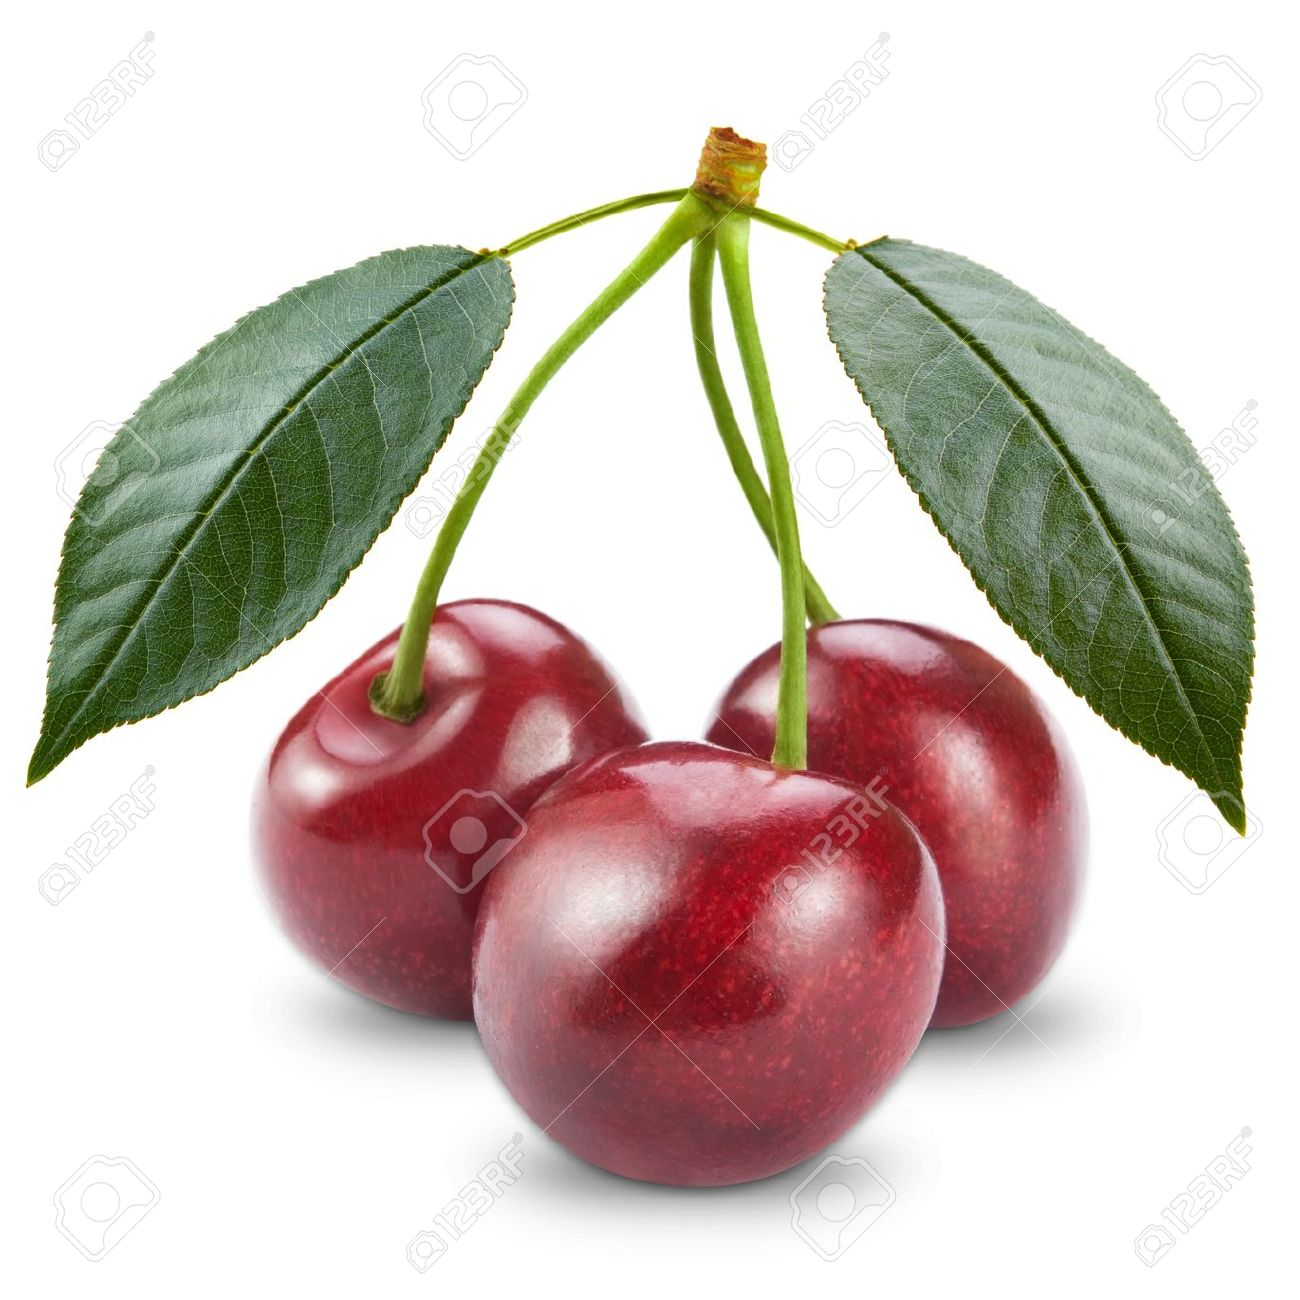 Ripe Cherry Isolated On White Background Stock Photo, Picture And.